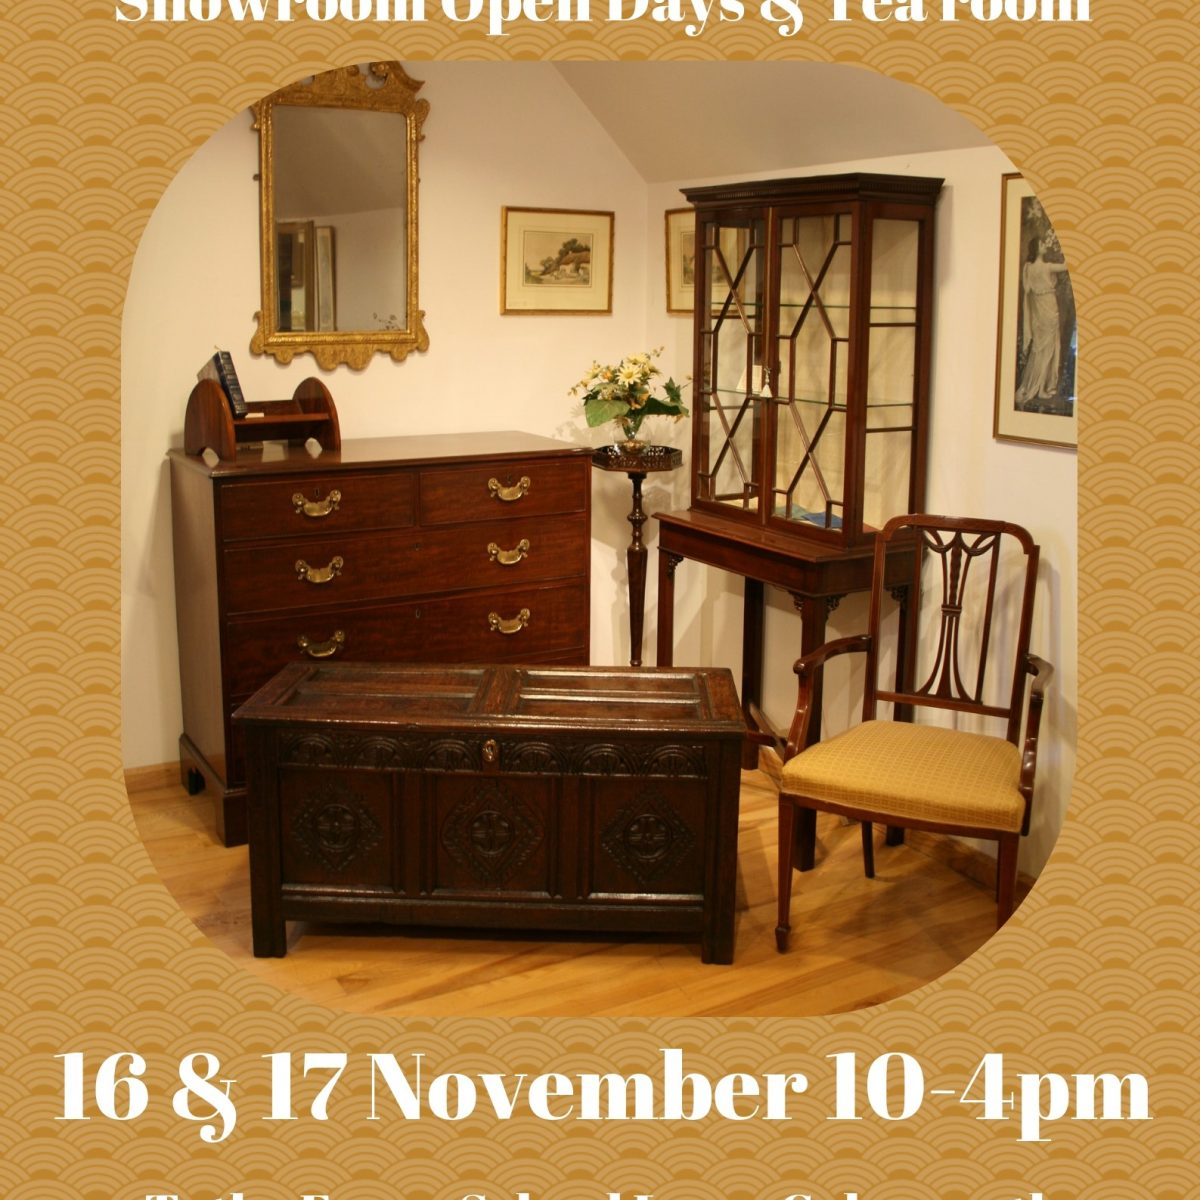 Antique exhibition/williamsantiques